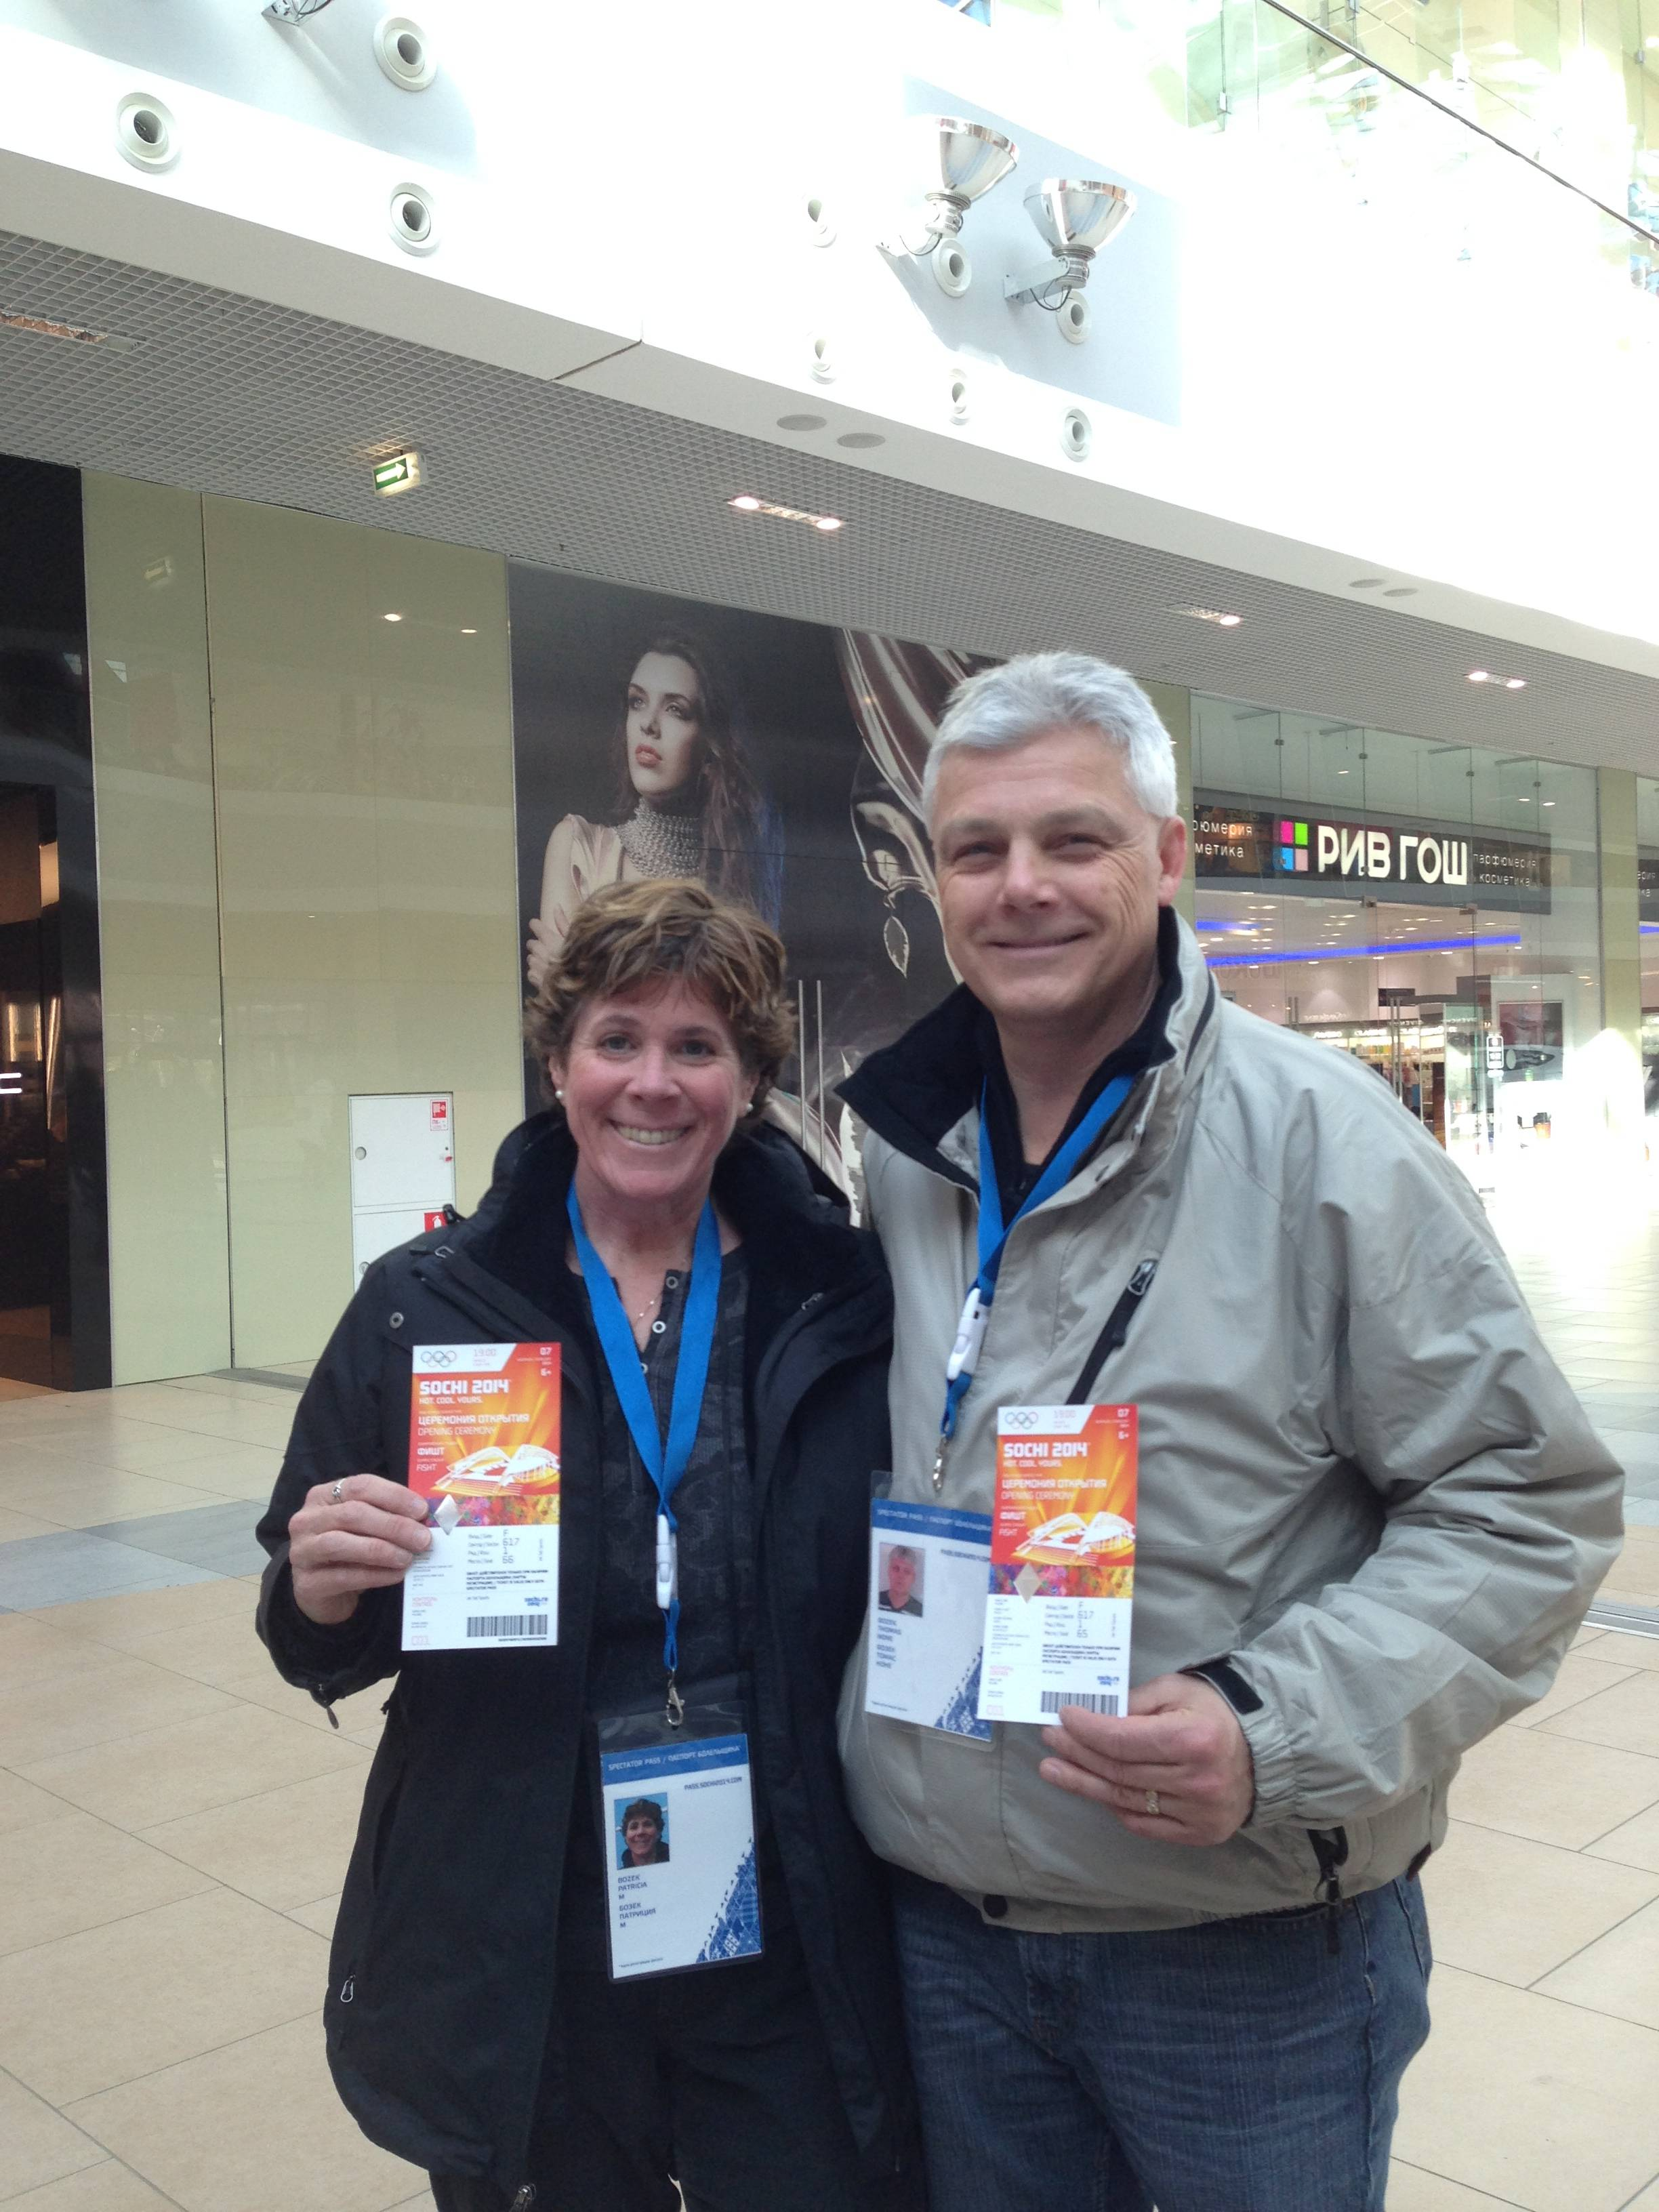 Patti and Tom Bozek of Buffalo Grove show their passes at the Olympic Games in Sochi, where they are cheering on daughter Megan, a U.S. women's hockey team player.